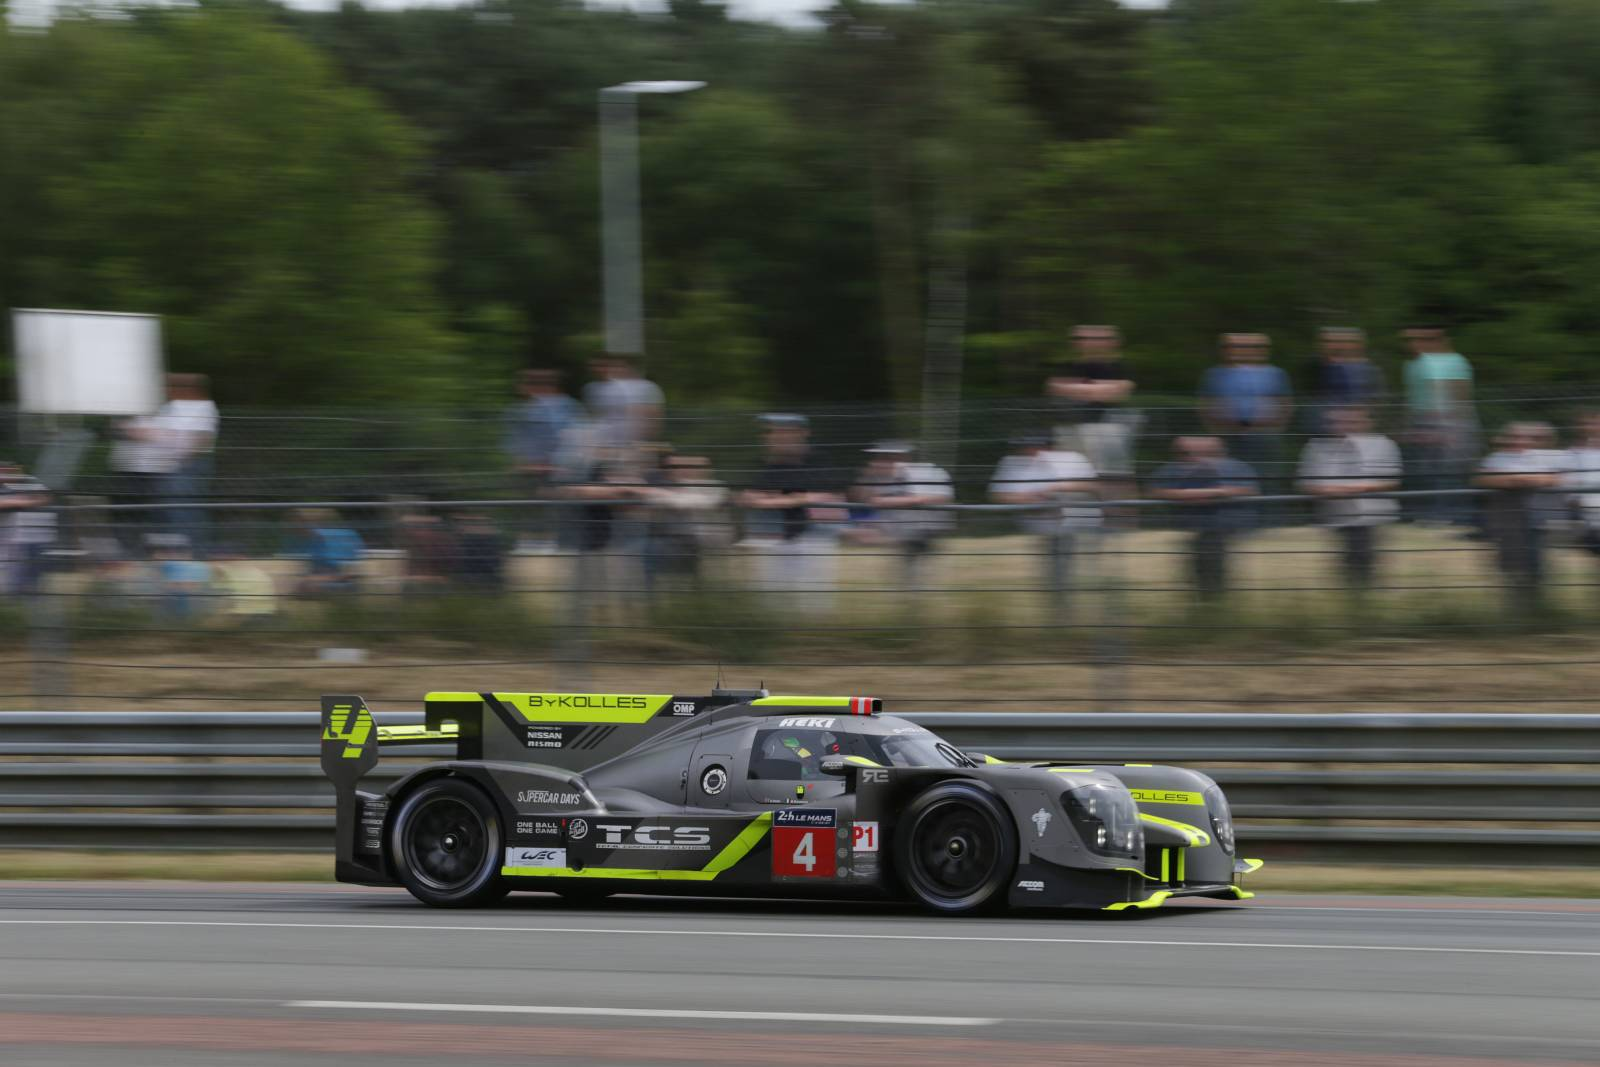 byKOLLES-racing-WEC-test-le-mans-2017-023